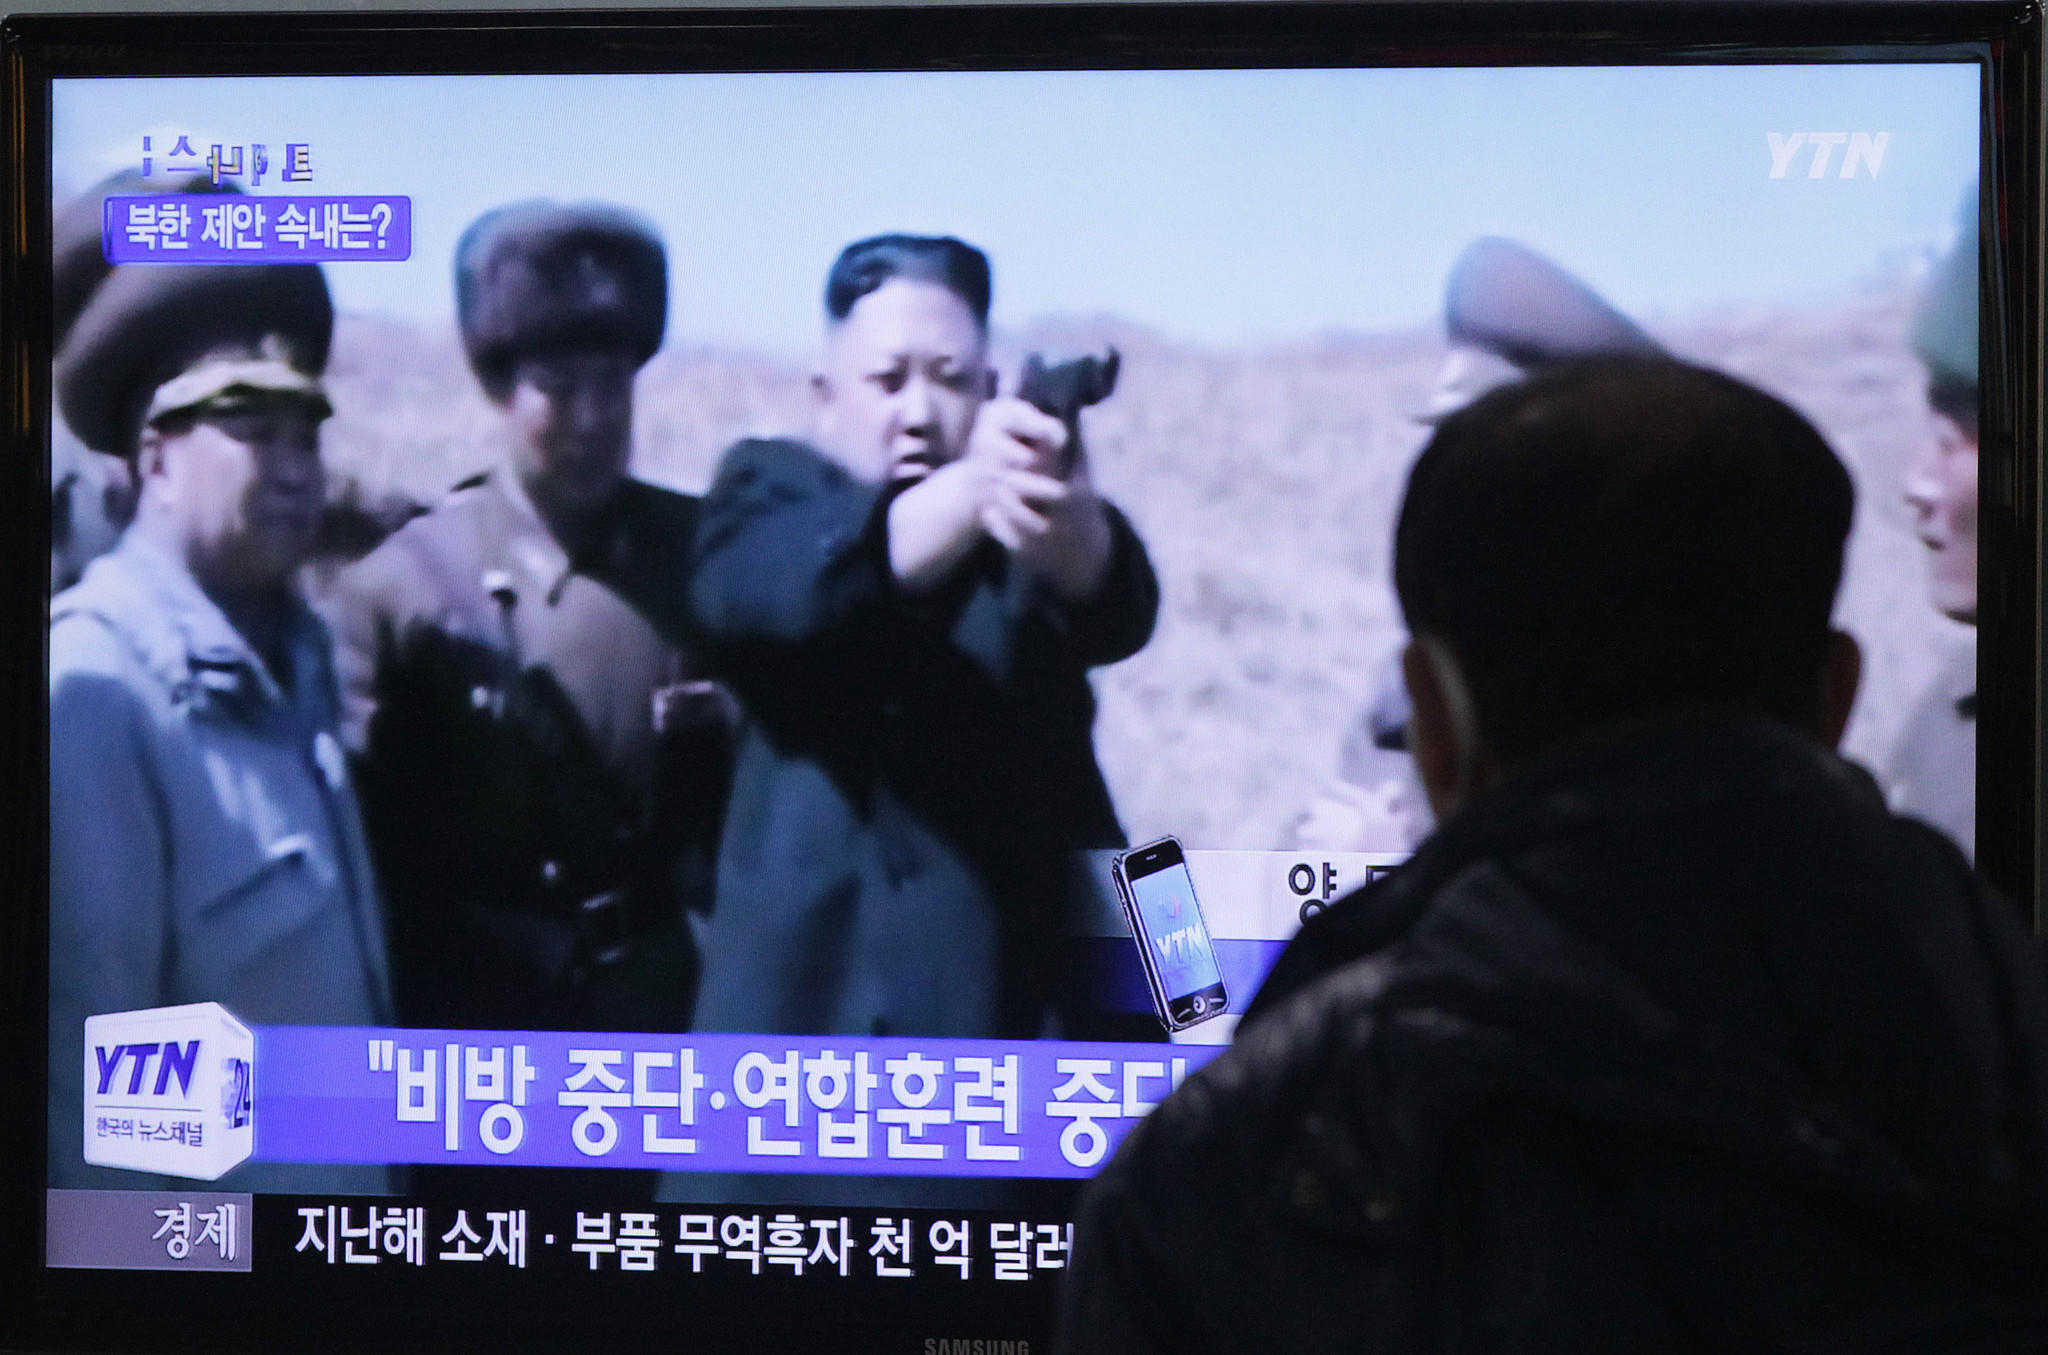 A television monitor at the Seoul Railway Station in the South Korean capital shows North Korean leader Kim Jong Un aiming a gun at an unknown target.